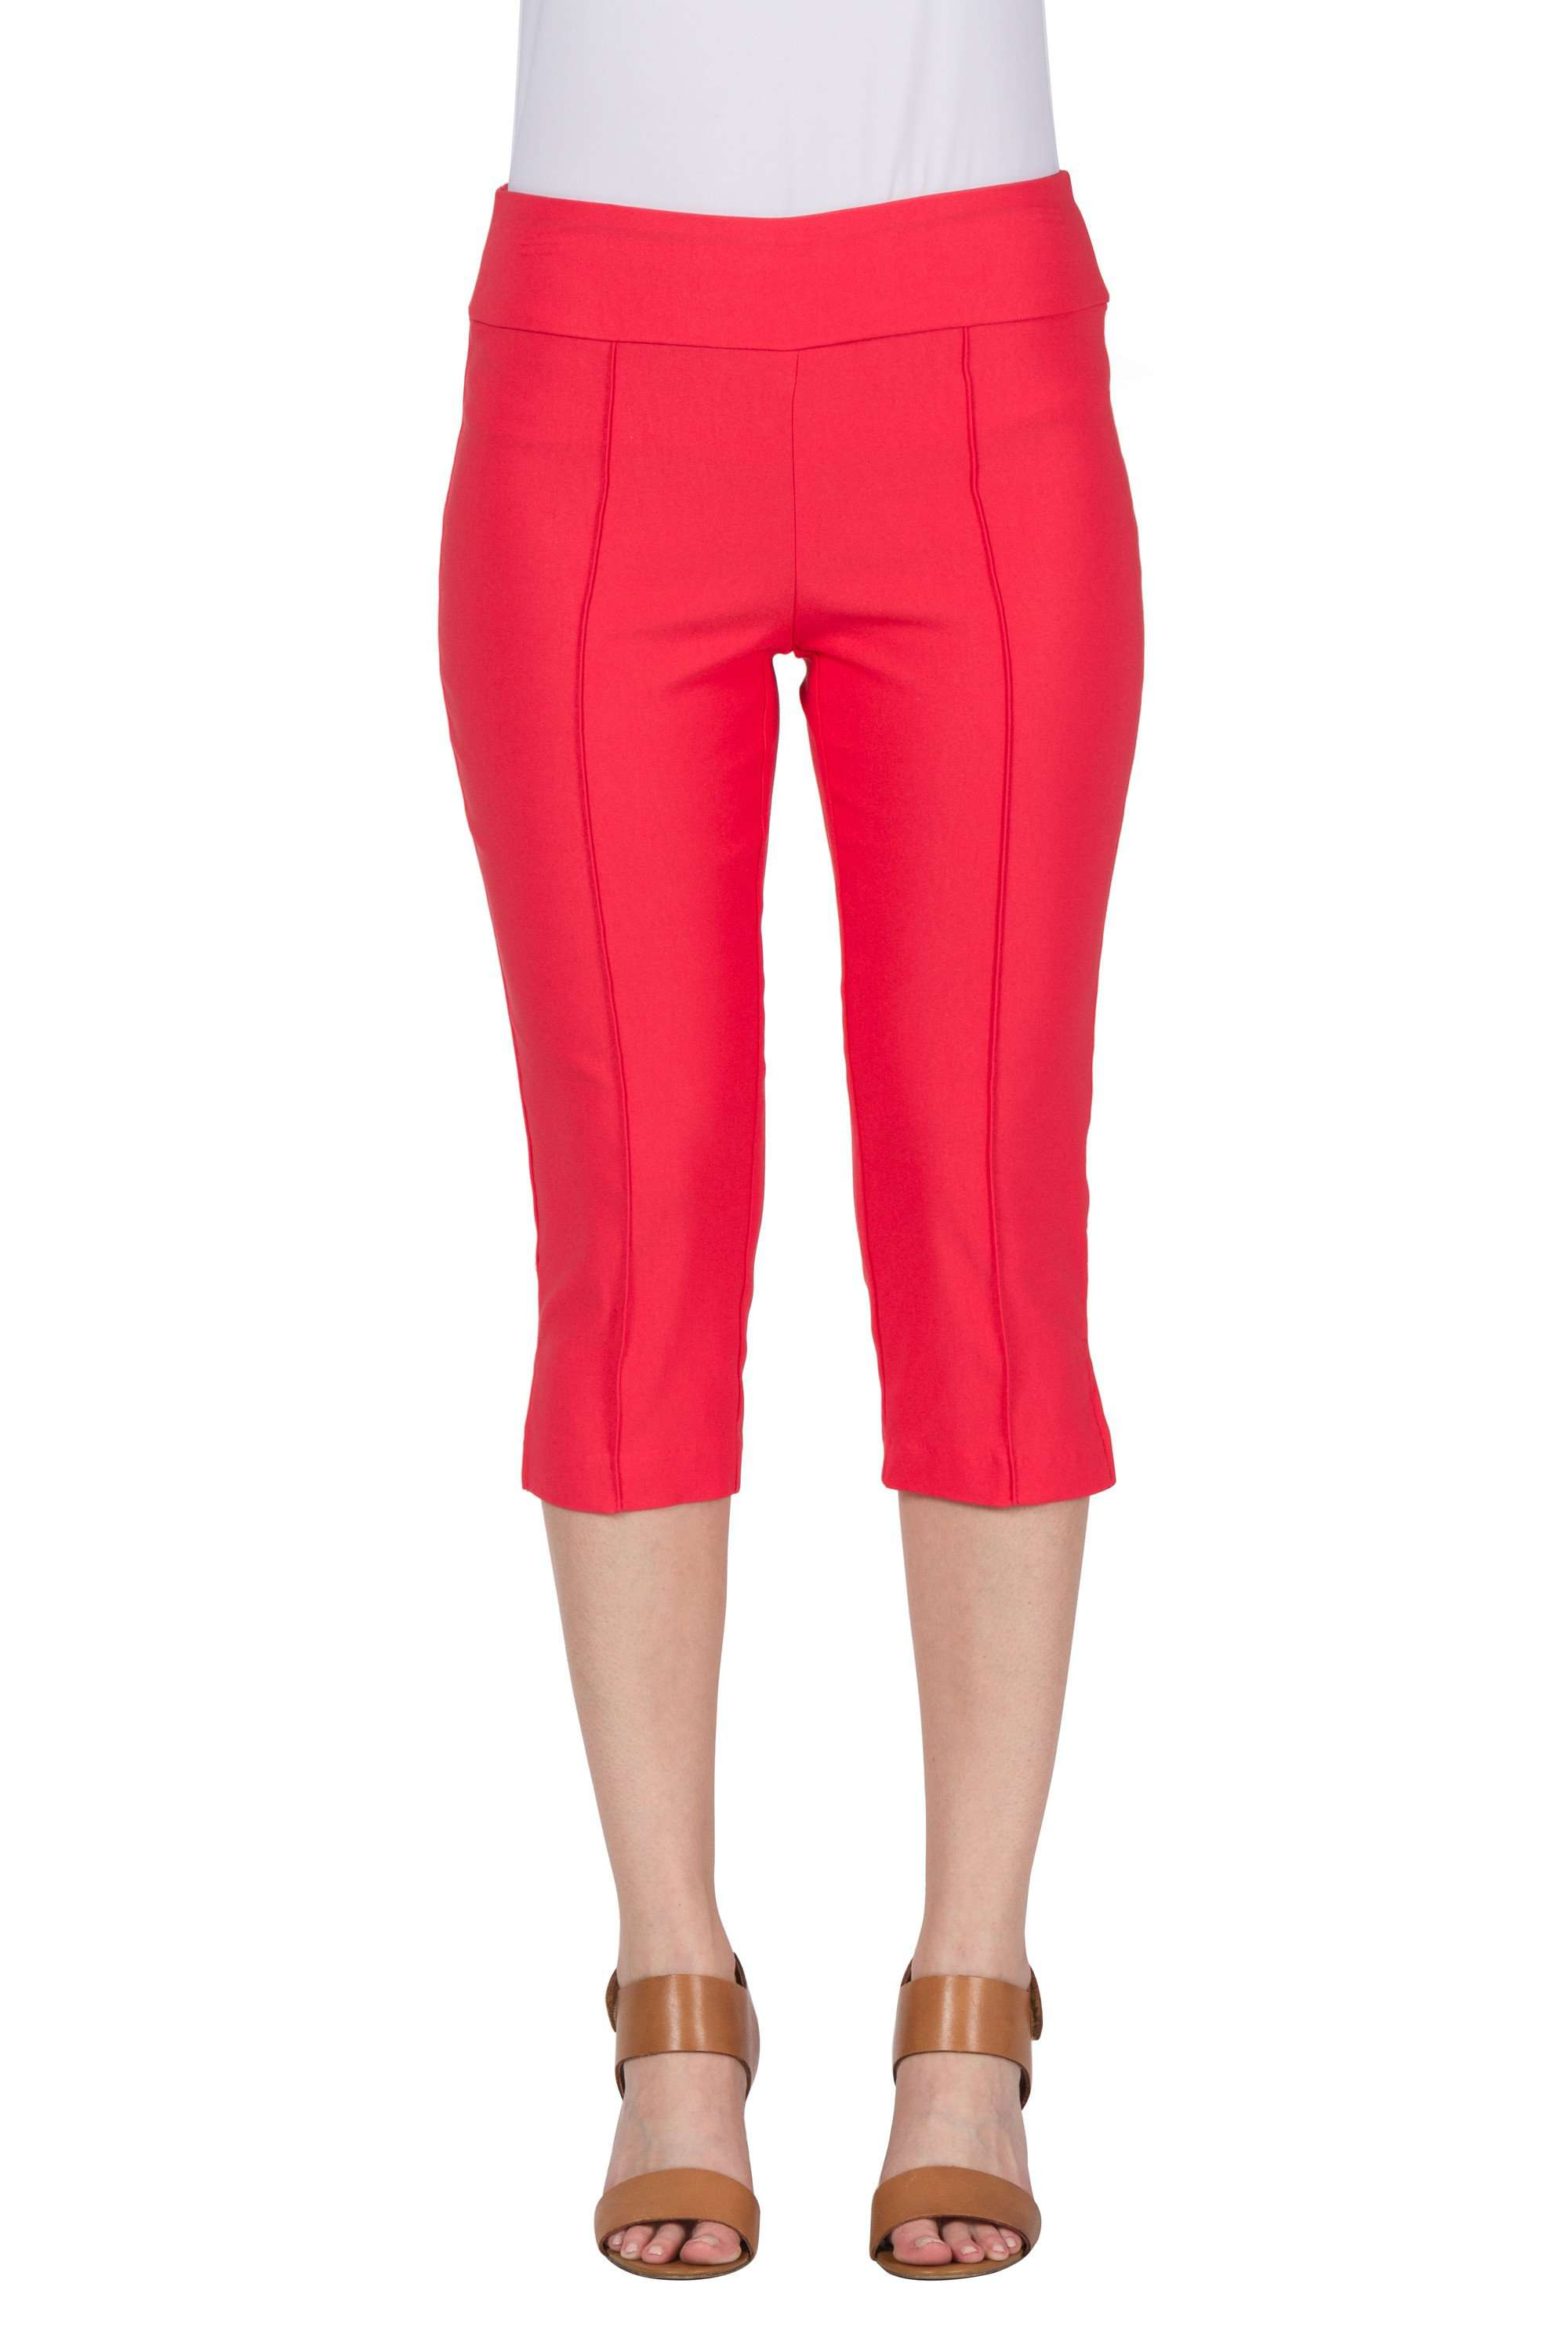 Coral Capri Pants Stretch Fabric-Quality and Comfort -Made in Canada - Yvonne Marie